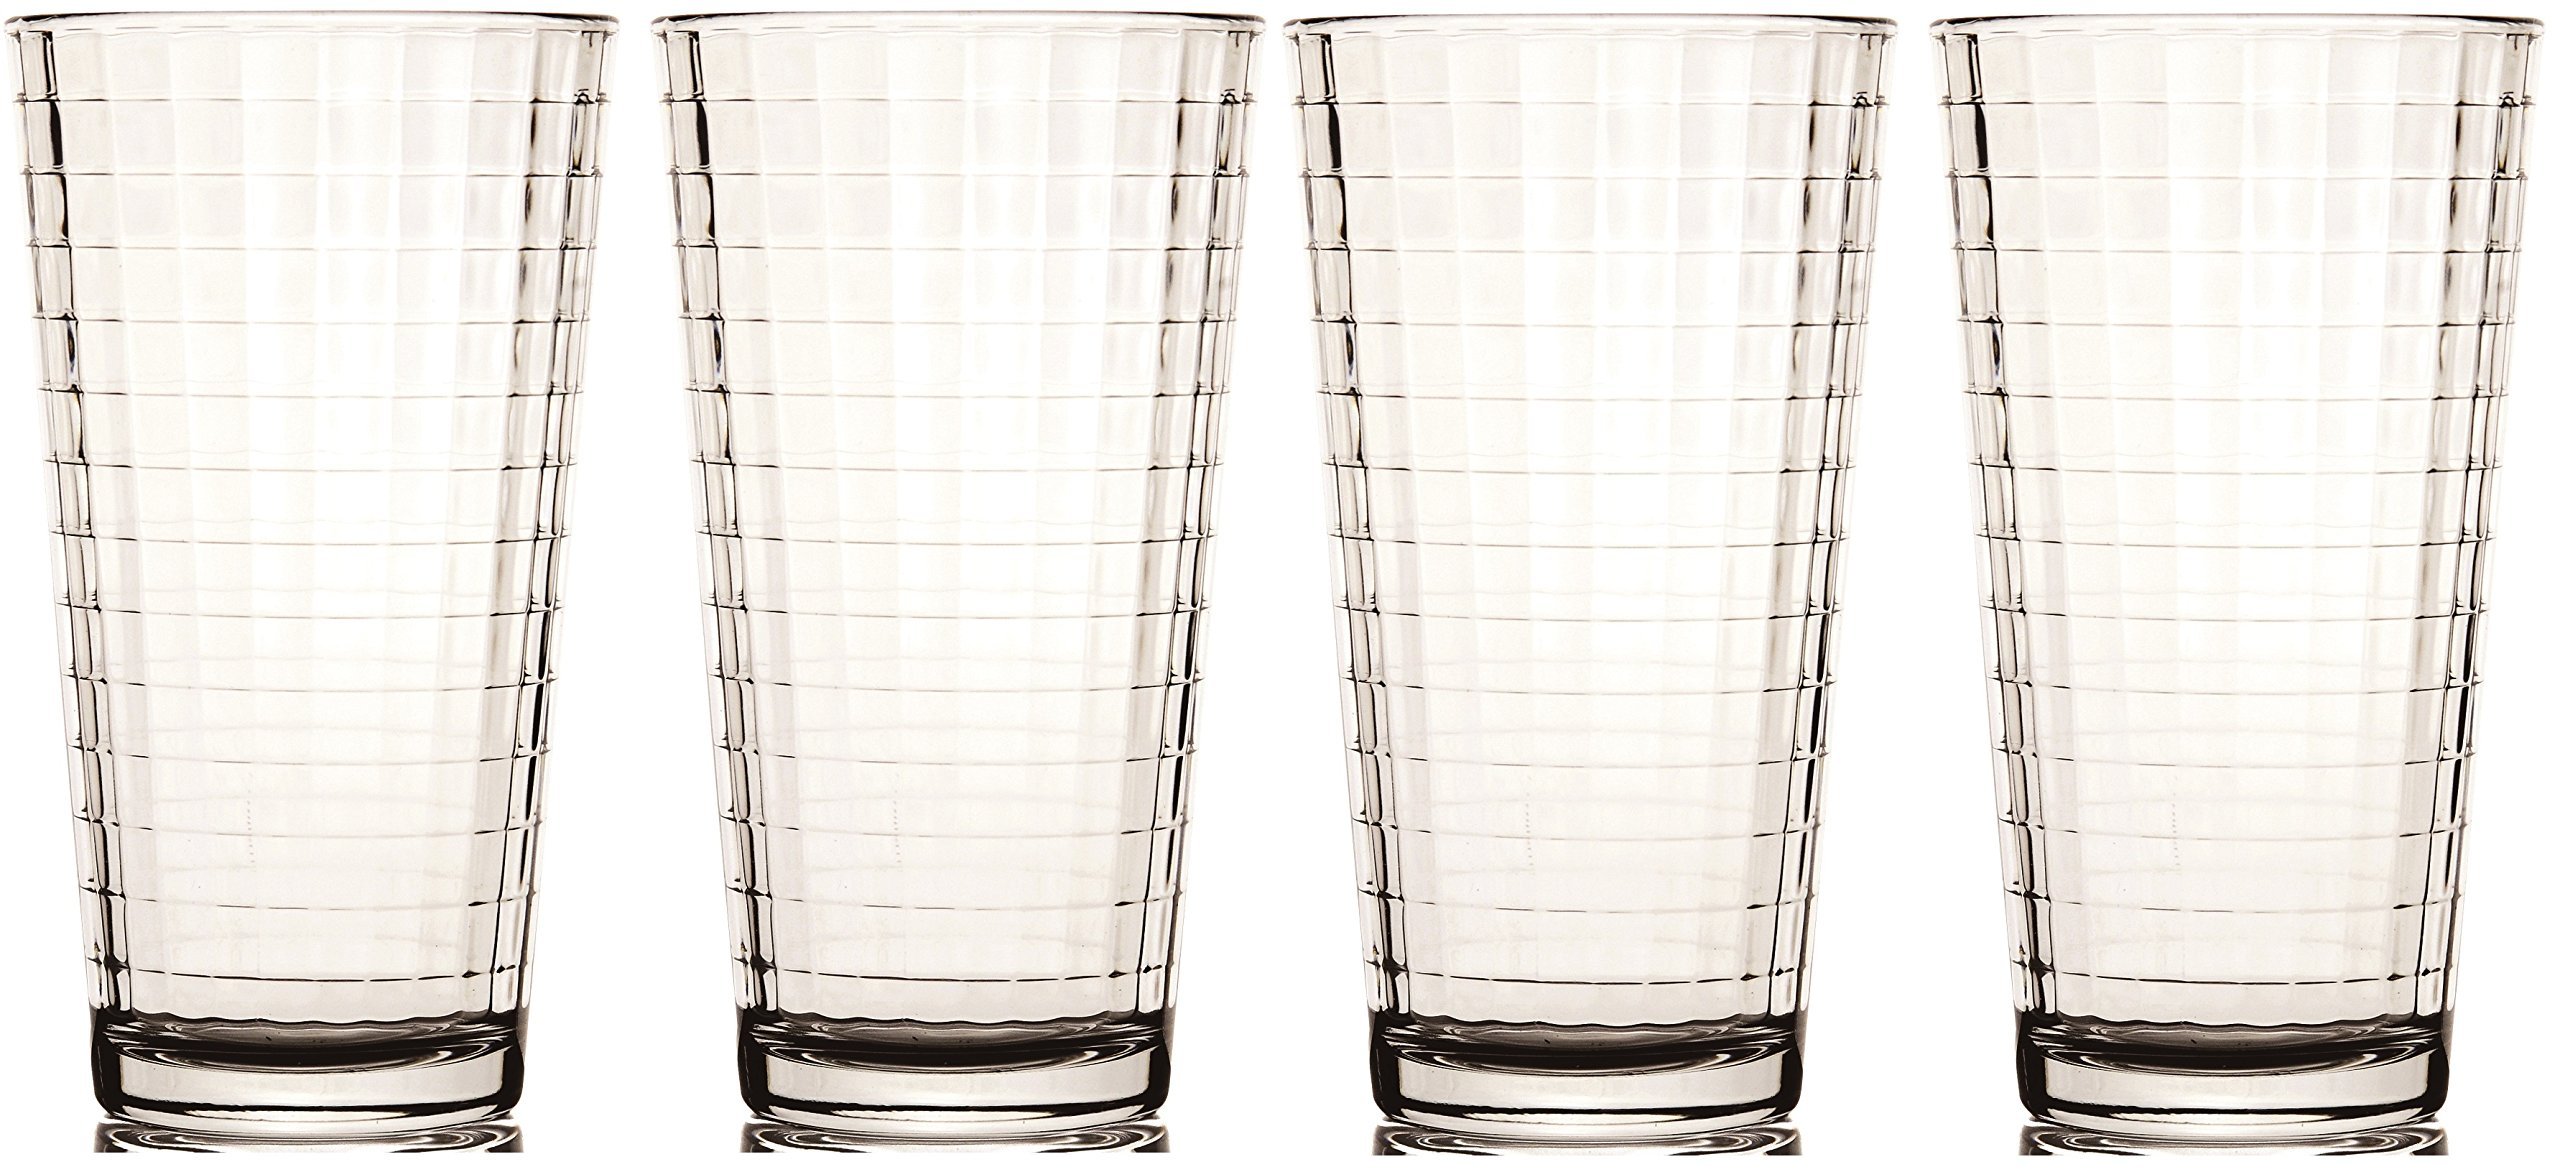 Circleware Windowpane Drinking Glasses, 17 Ounce, Set of 4